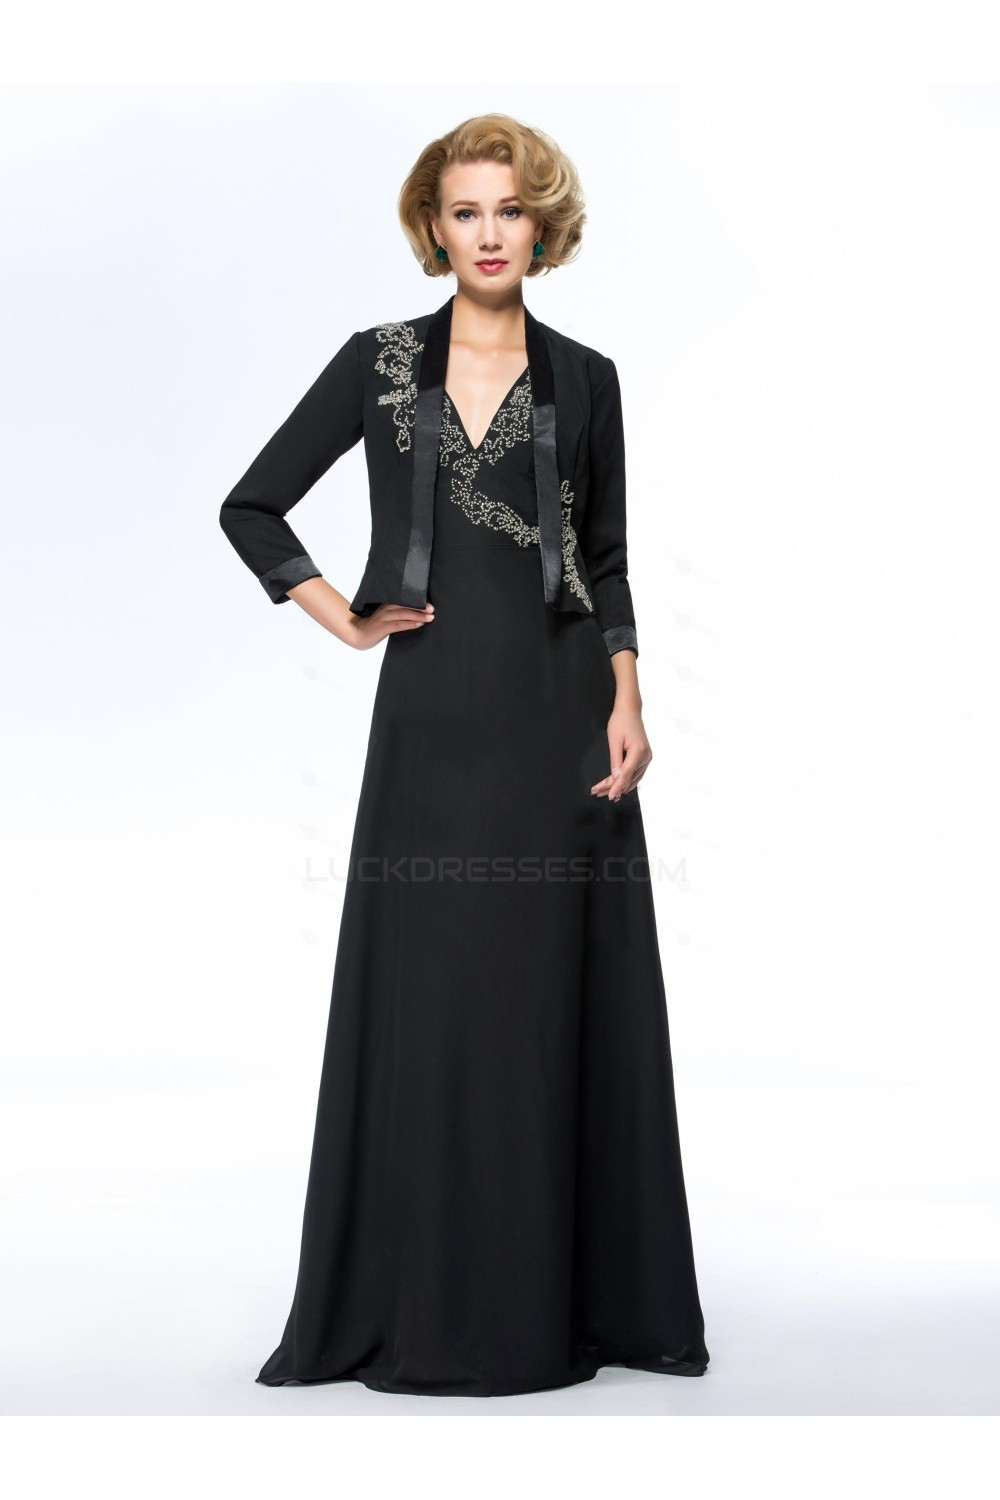 Black/Gold One Sleeve Mesh & Lace Gown with Lace Long Mermaid Prom Dress.